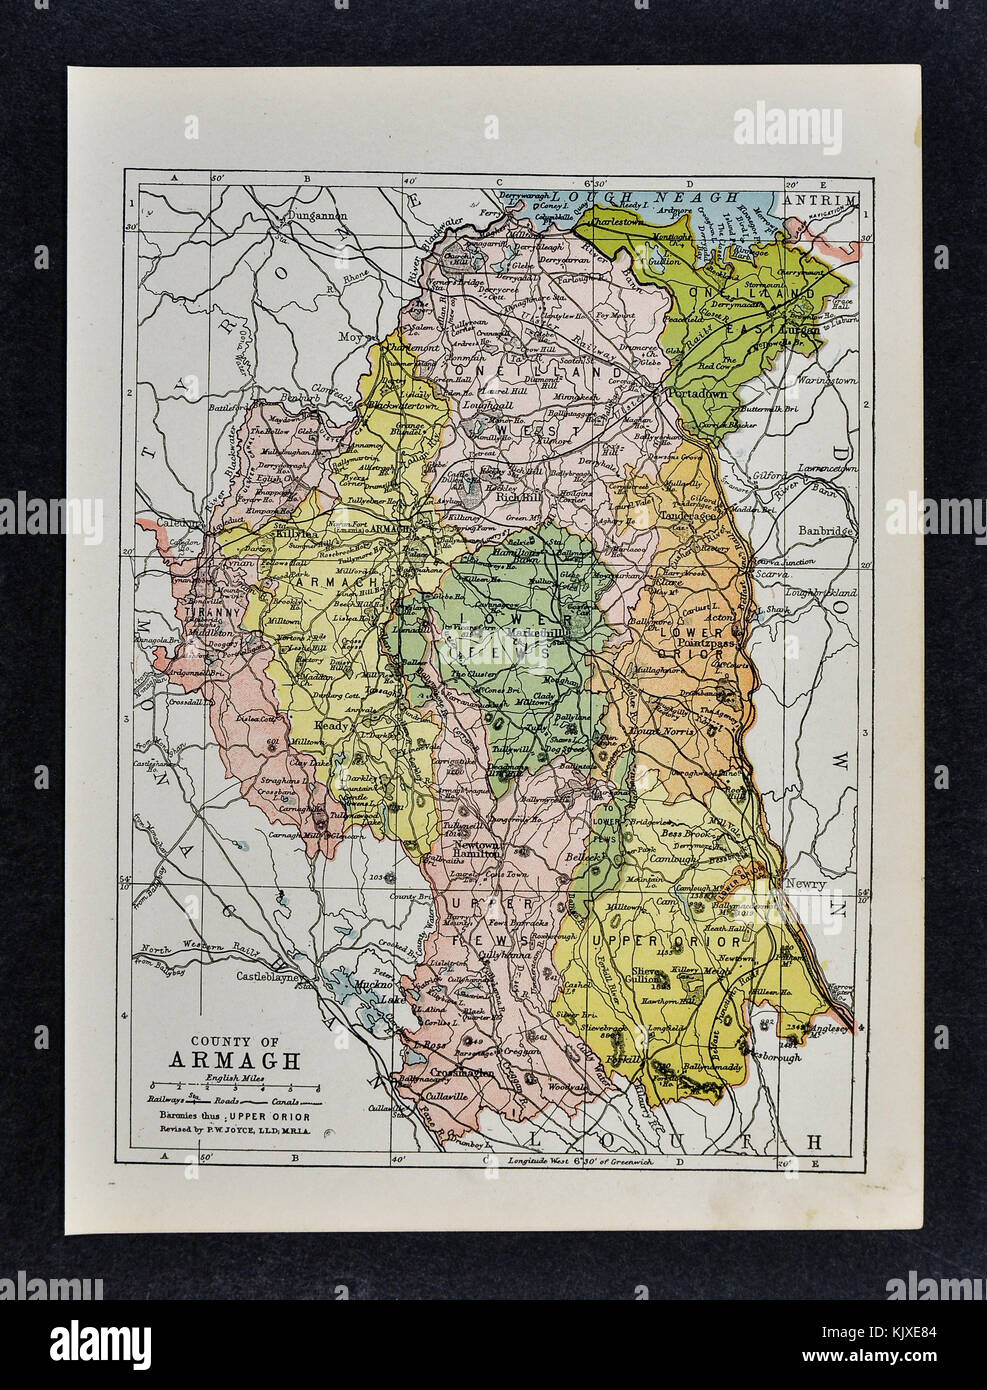 County Armagh Ireland Map.Antique Ireland Map Armagh County Markethill East Lurgen